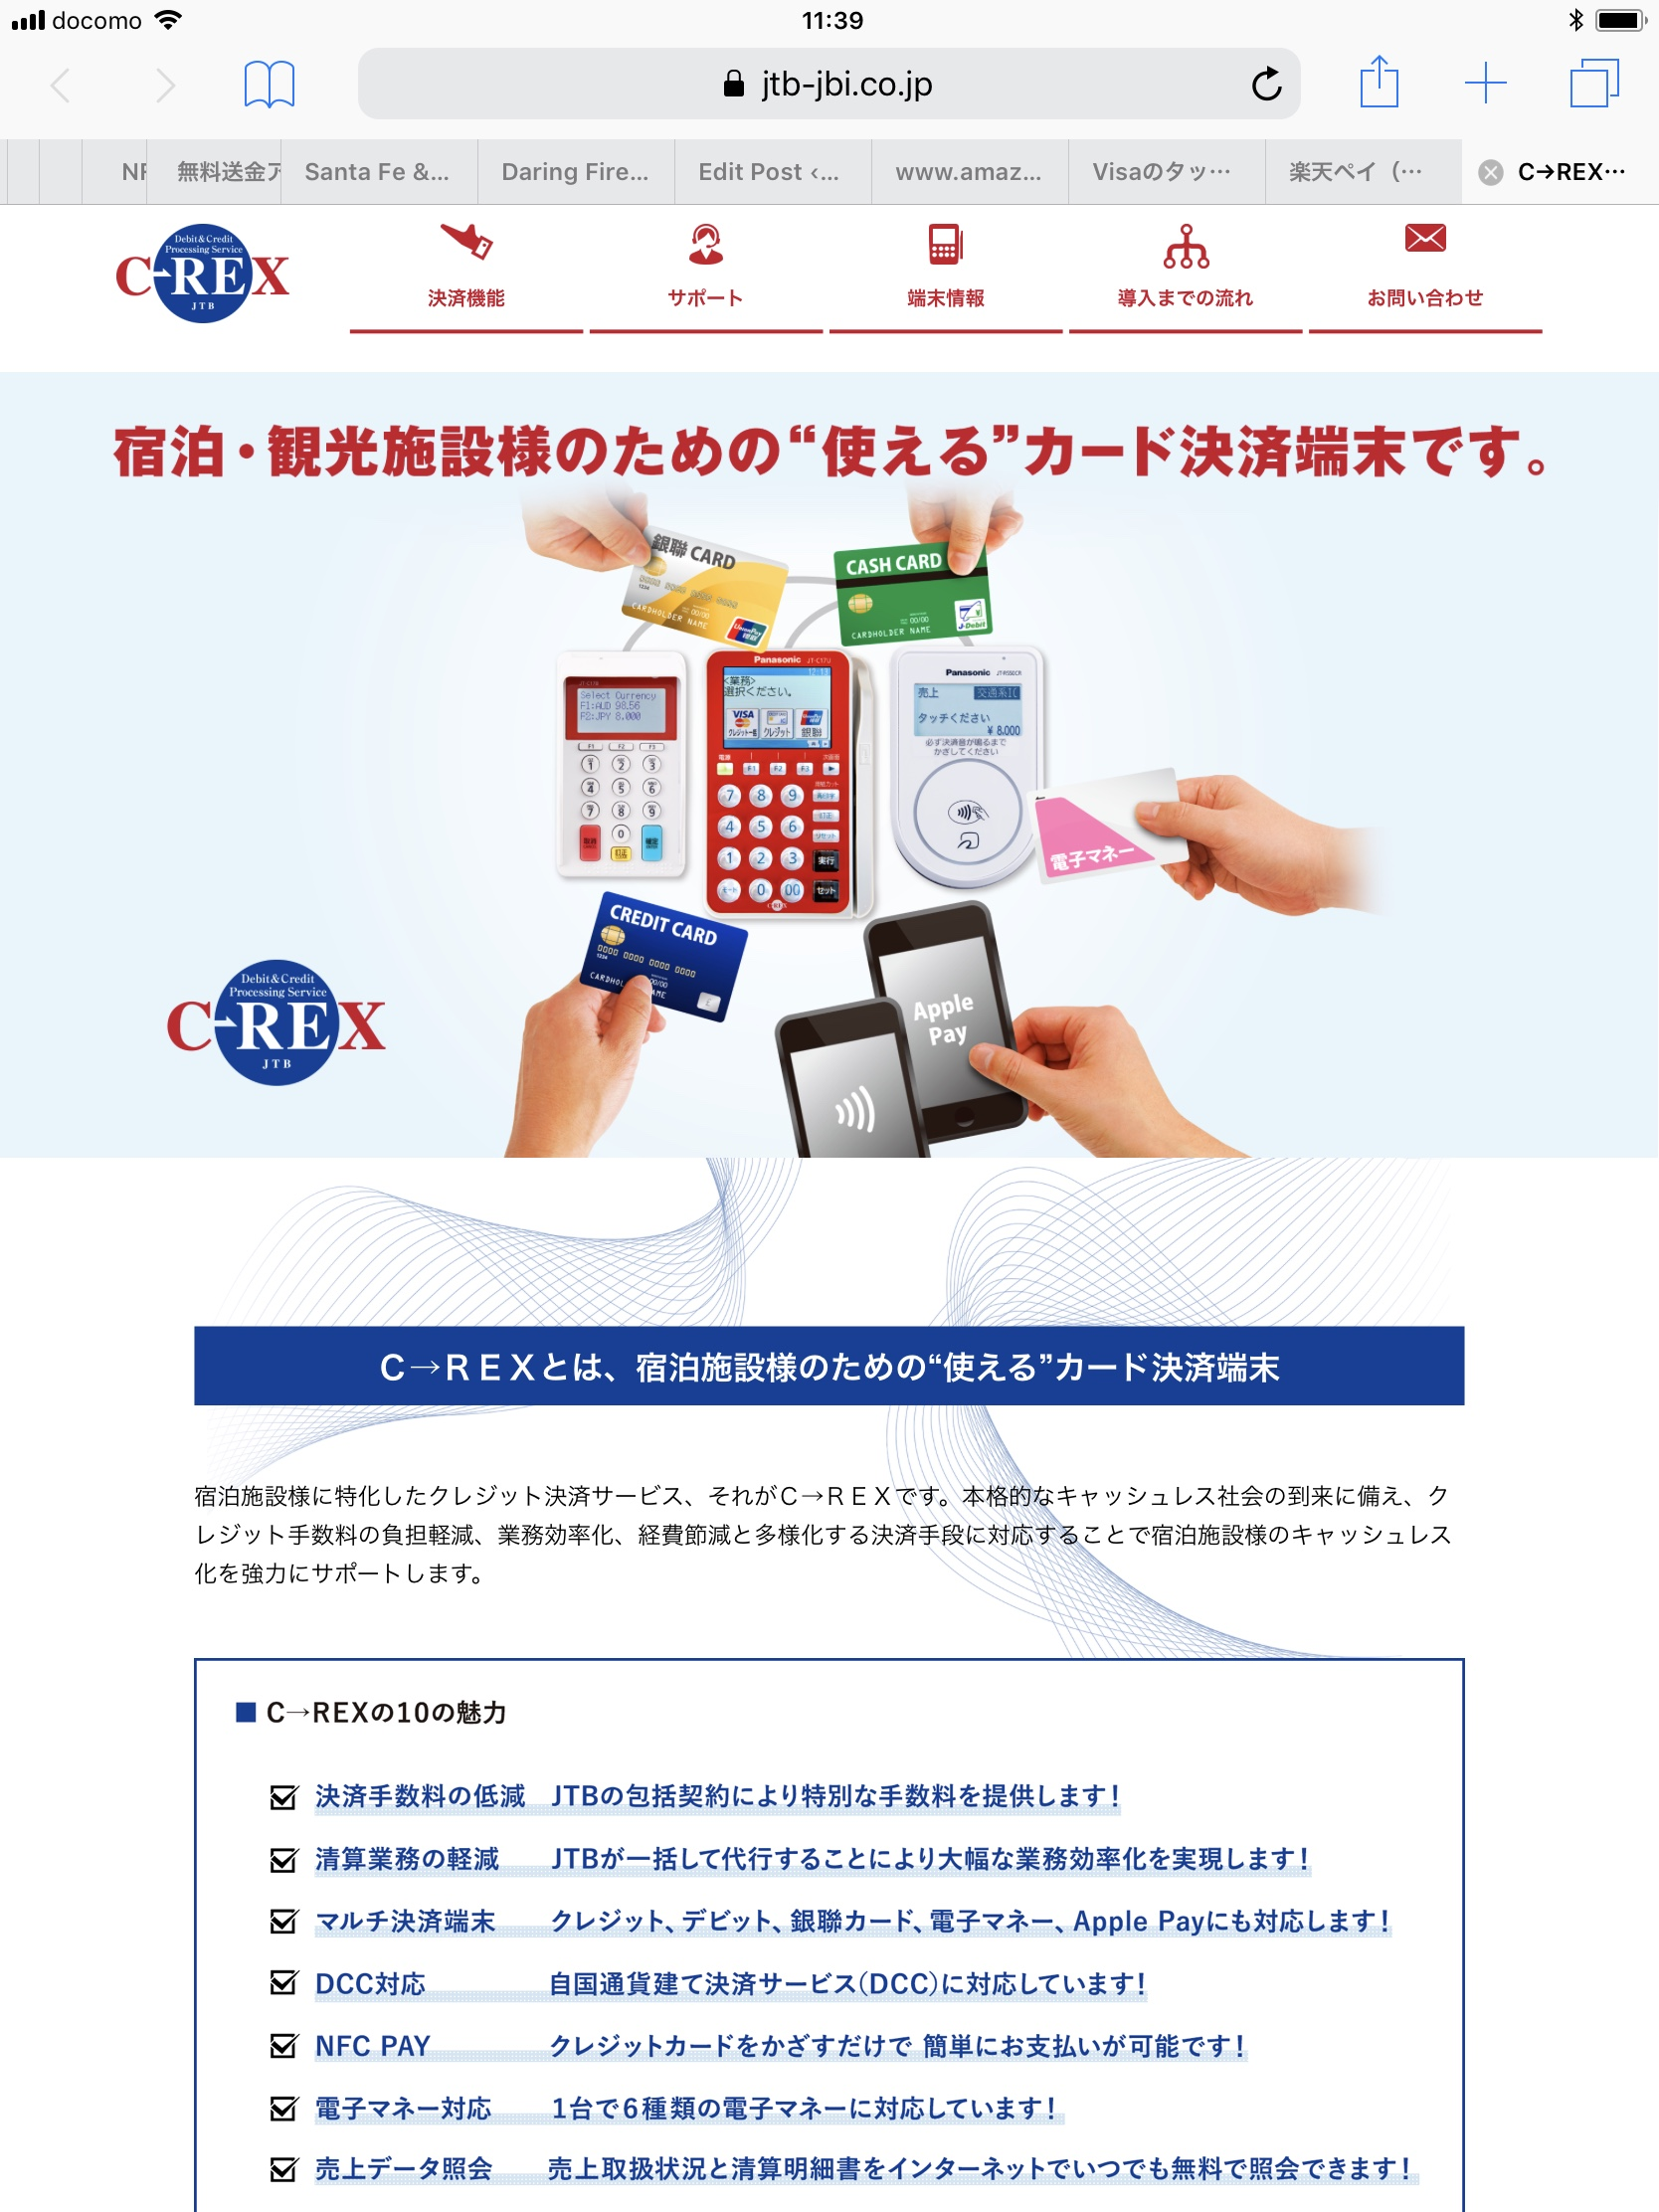 JCB and JTB offer the C-REX payment processing service for Japanese inns and smaller hotels. It supports all major payment methods including NFC Pay, one of the few solutions for smaller businesses.